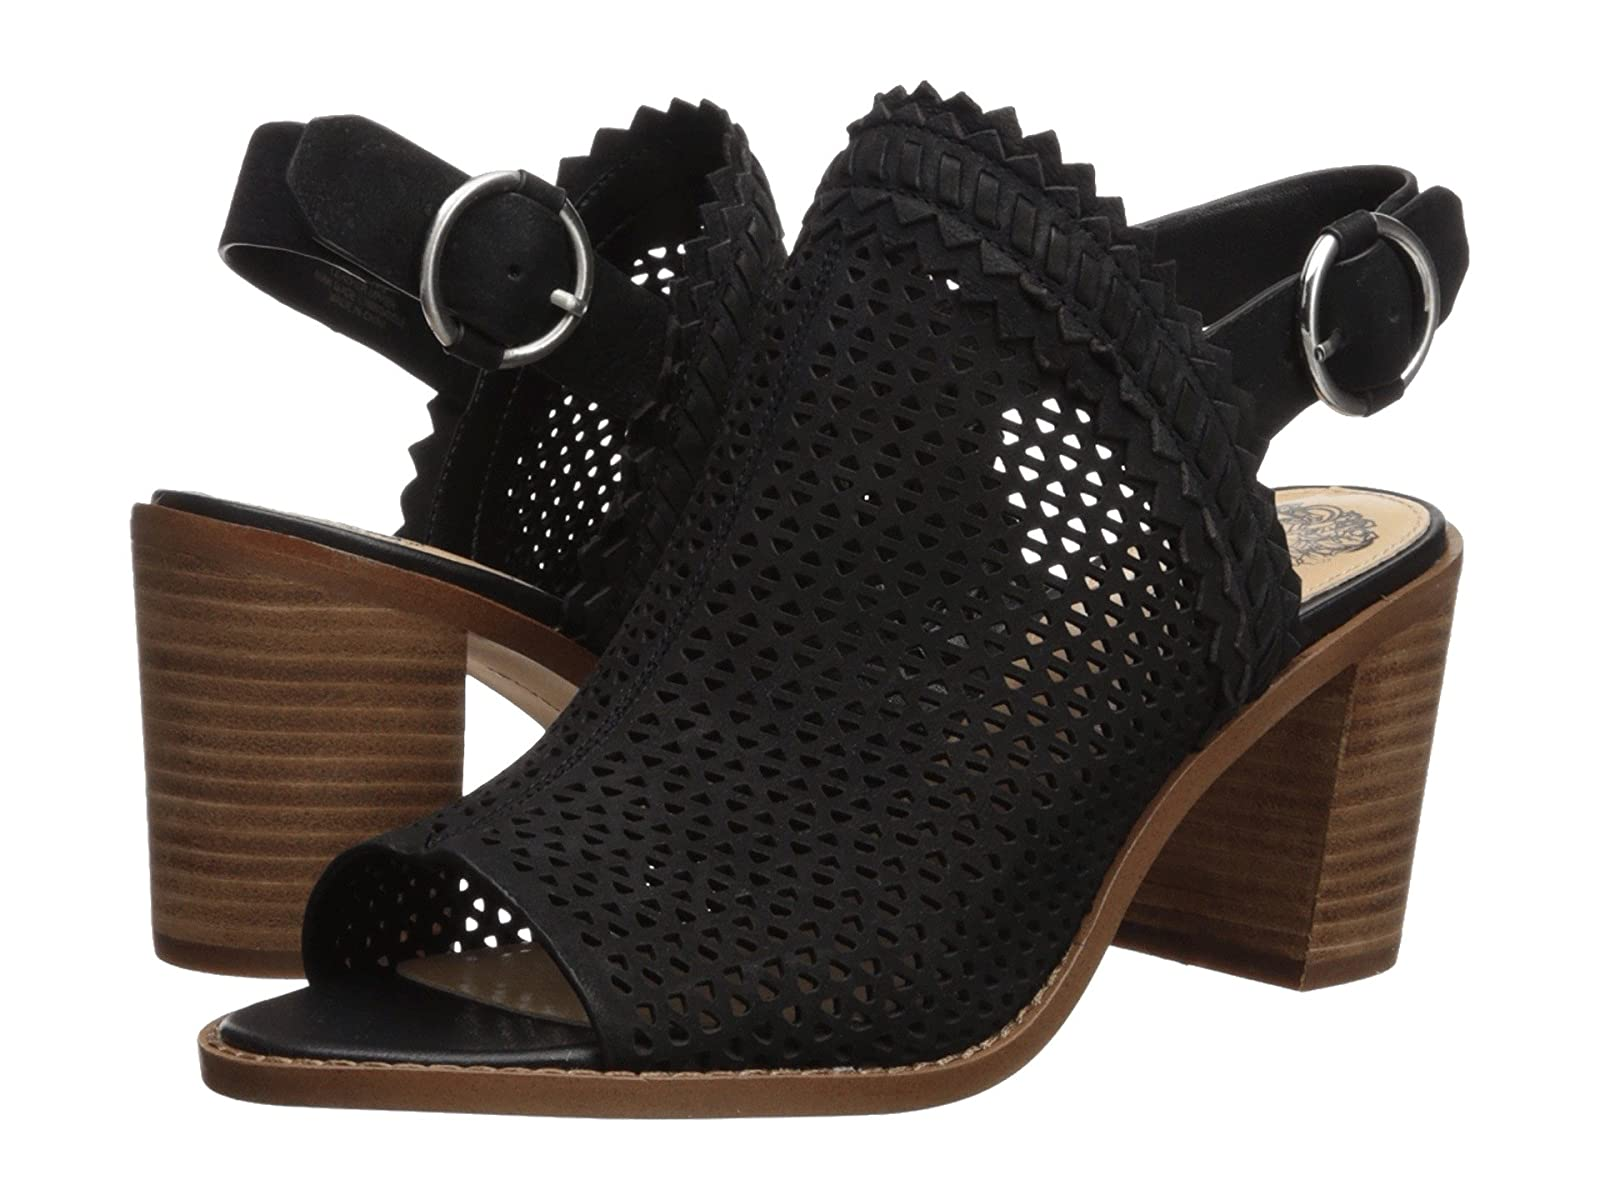 Vince Camuto TricindaCheap and distinctive eye-catching shoes